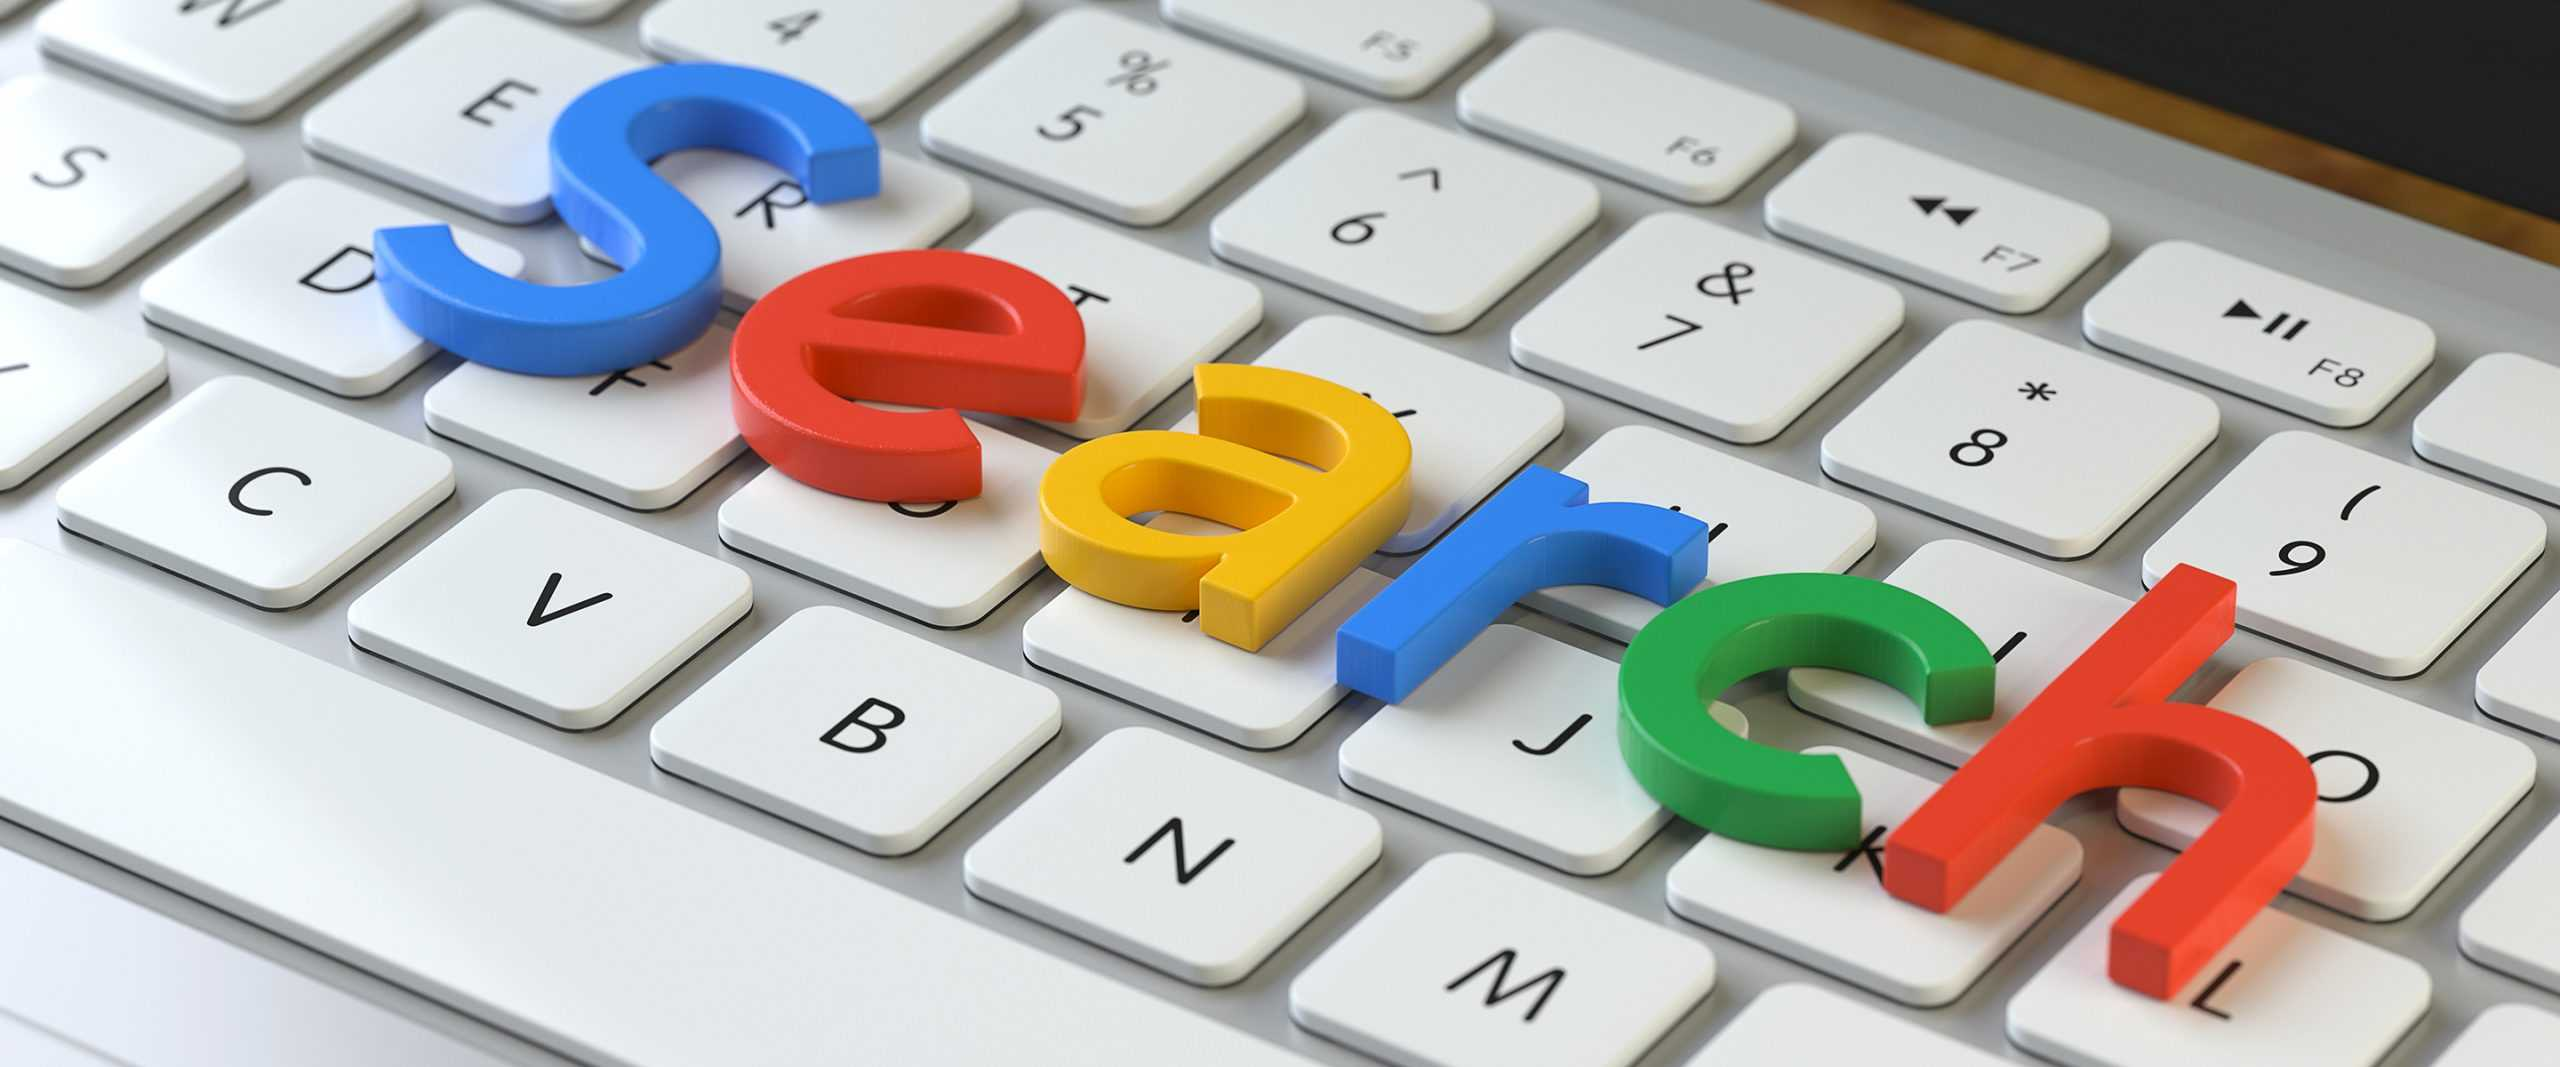 A significant drop in spending attributed to Googles' search queries